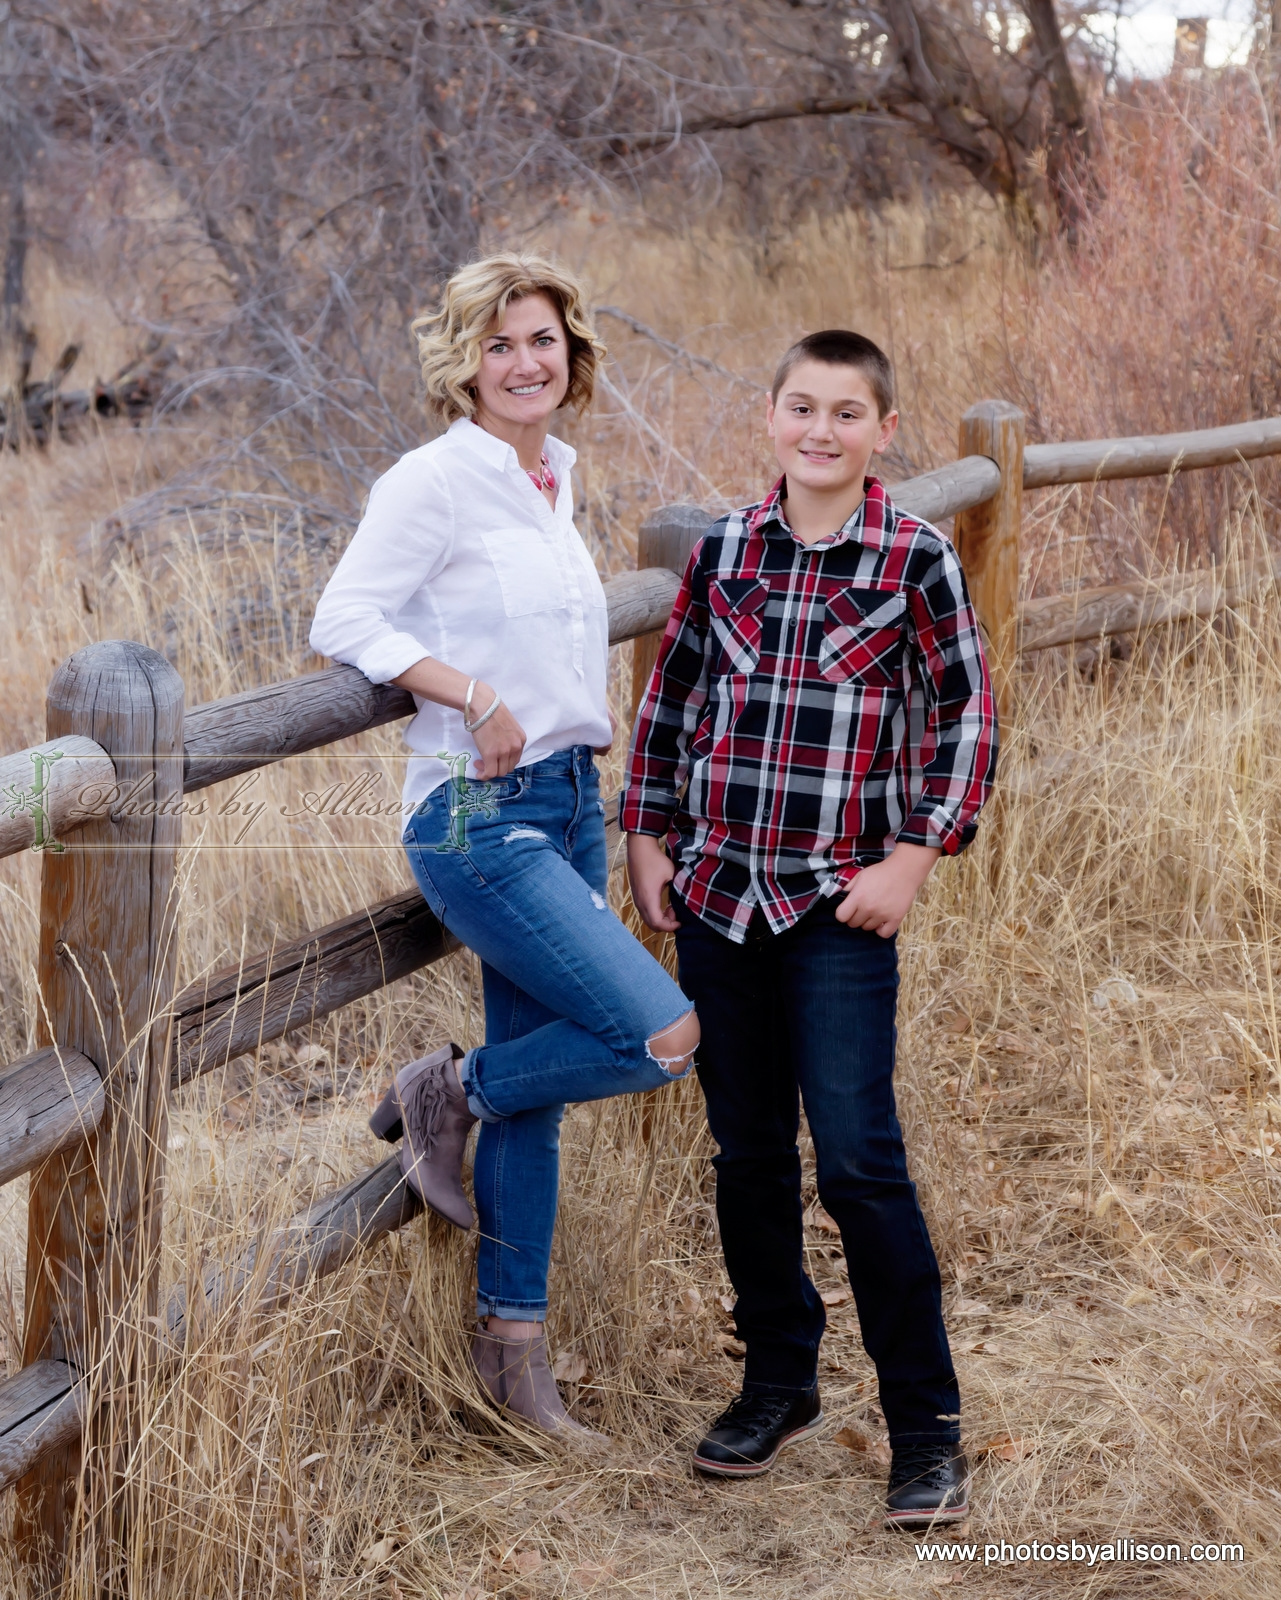 Highlands Ranch Images On Pinterest: Photos By Allison Blog: Family Photos, Photographer